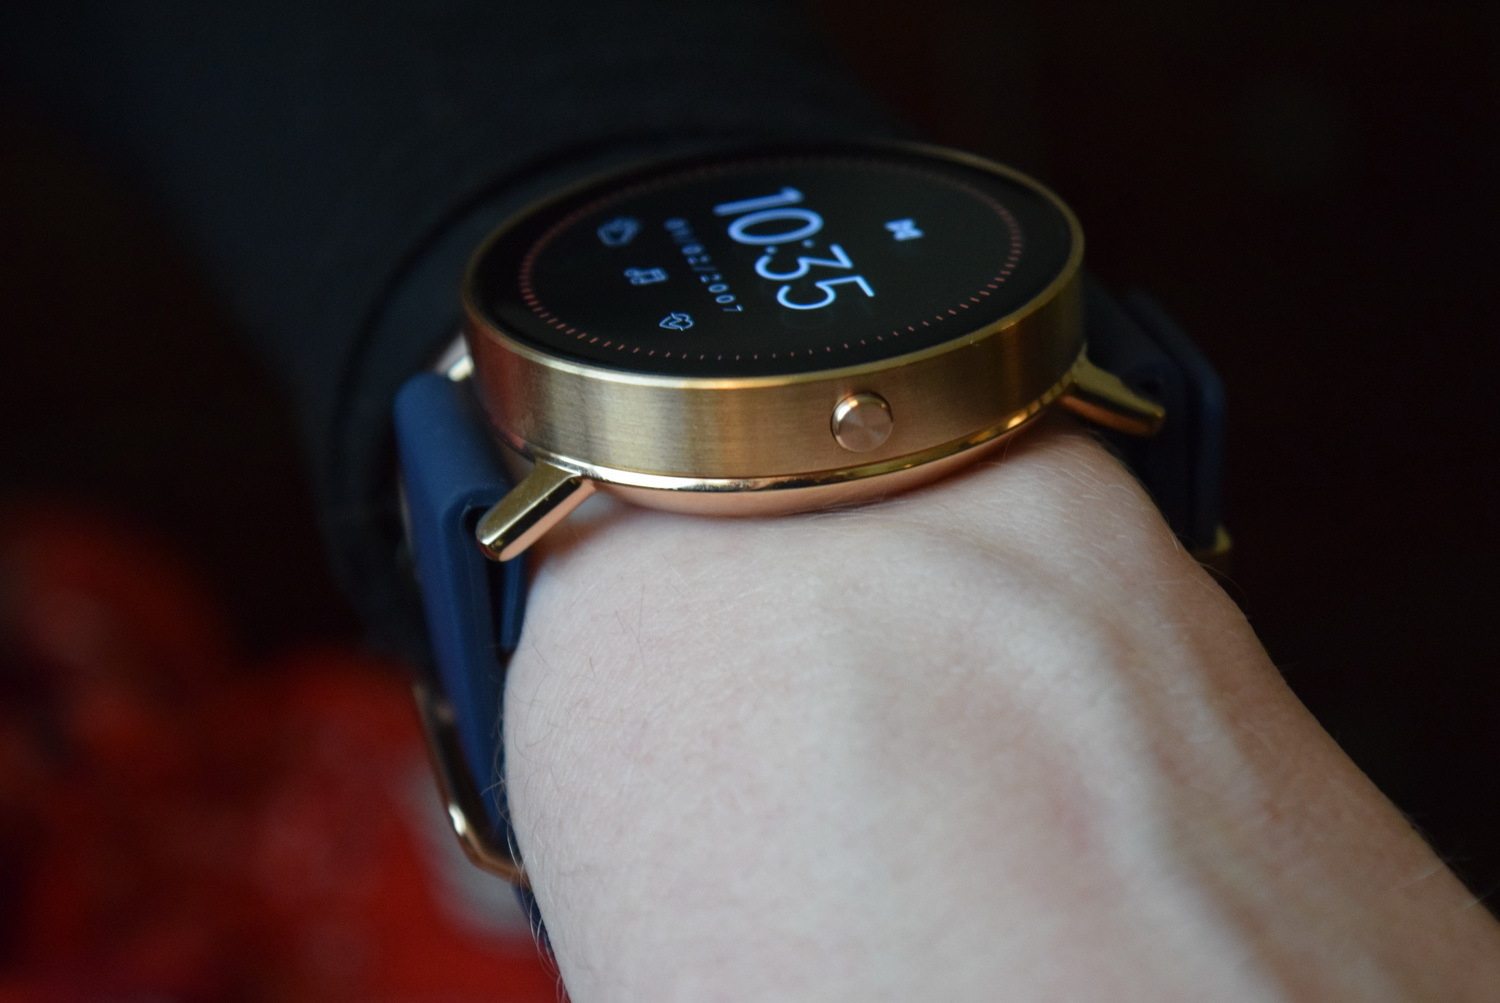 Misfit Vapor Has Android Wear Snapdragon Wear 2100 2 Day